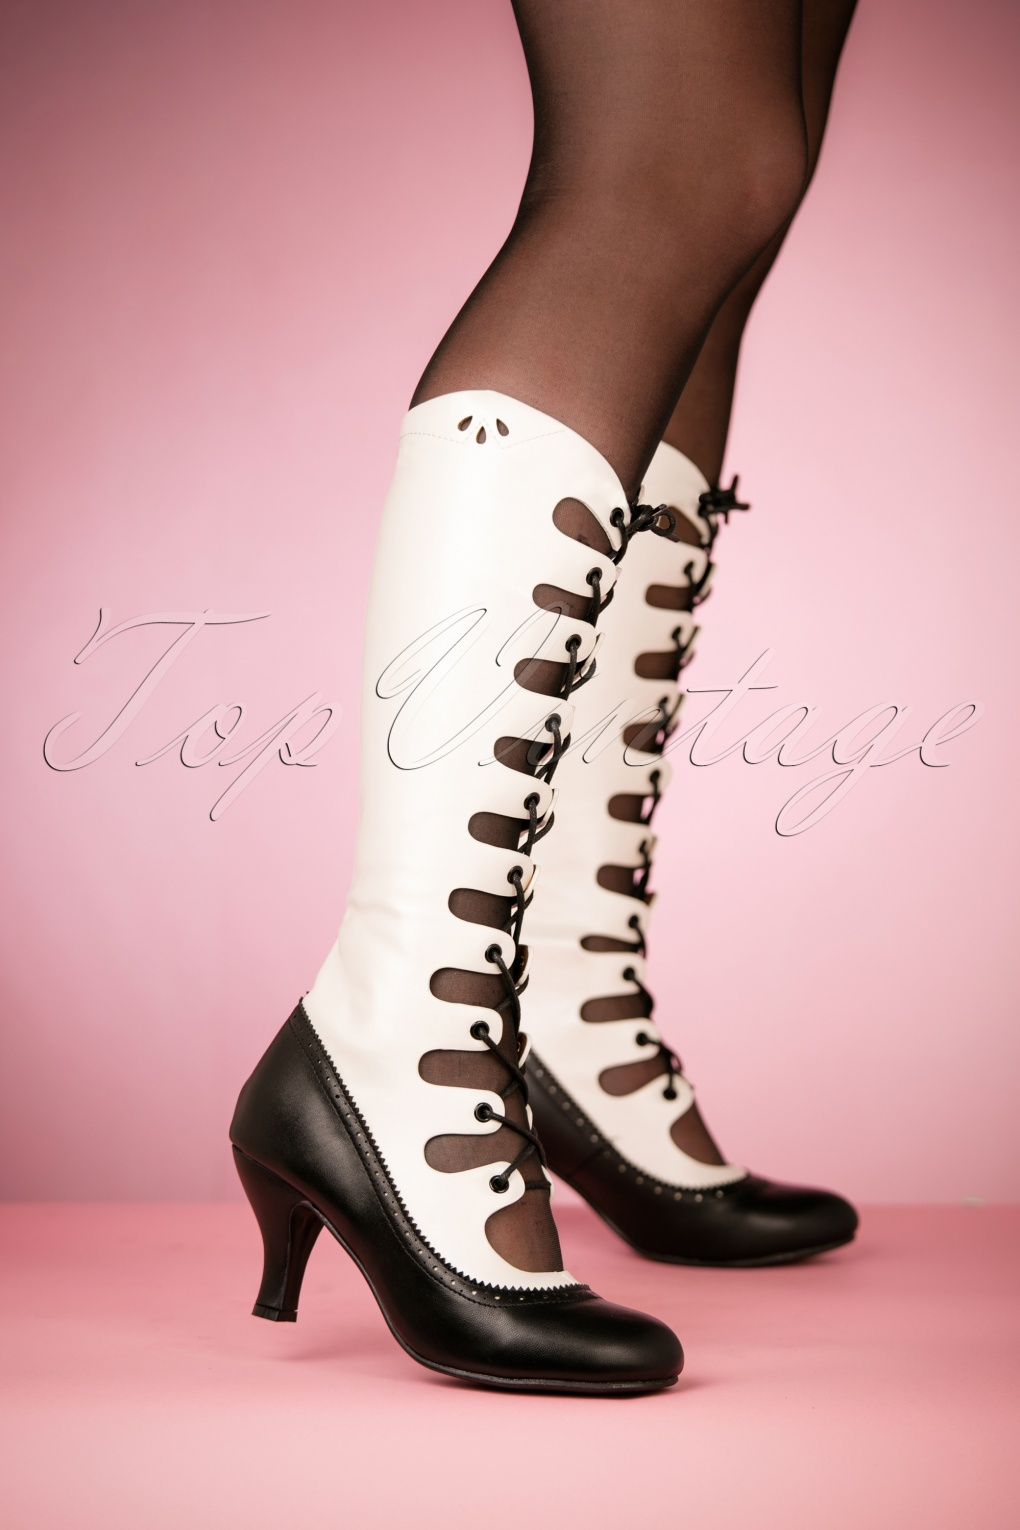 Vintage Style Shoes, Vintage Inspired Shoes 20s Free Bird Boots in Black and White £74.42 AT vintagedancer.com